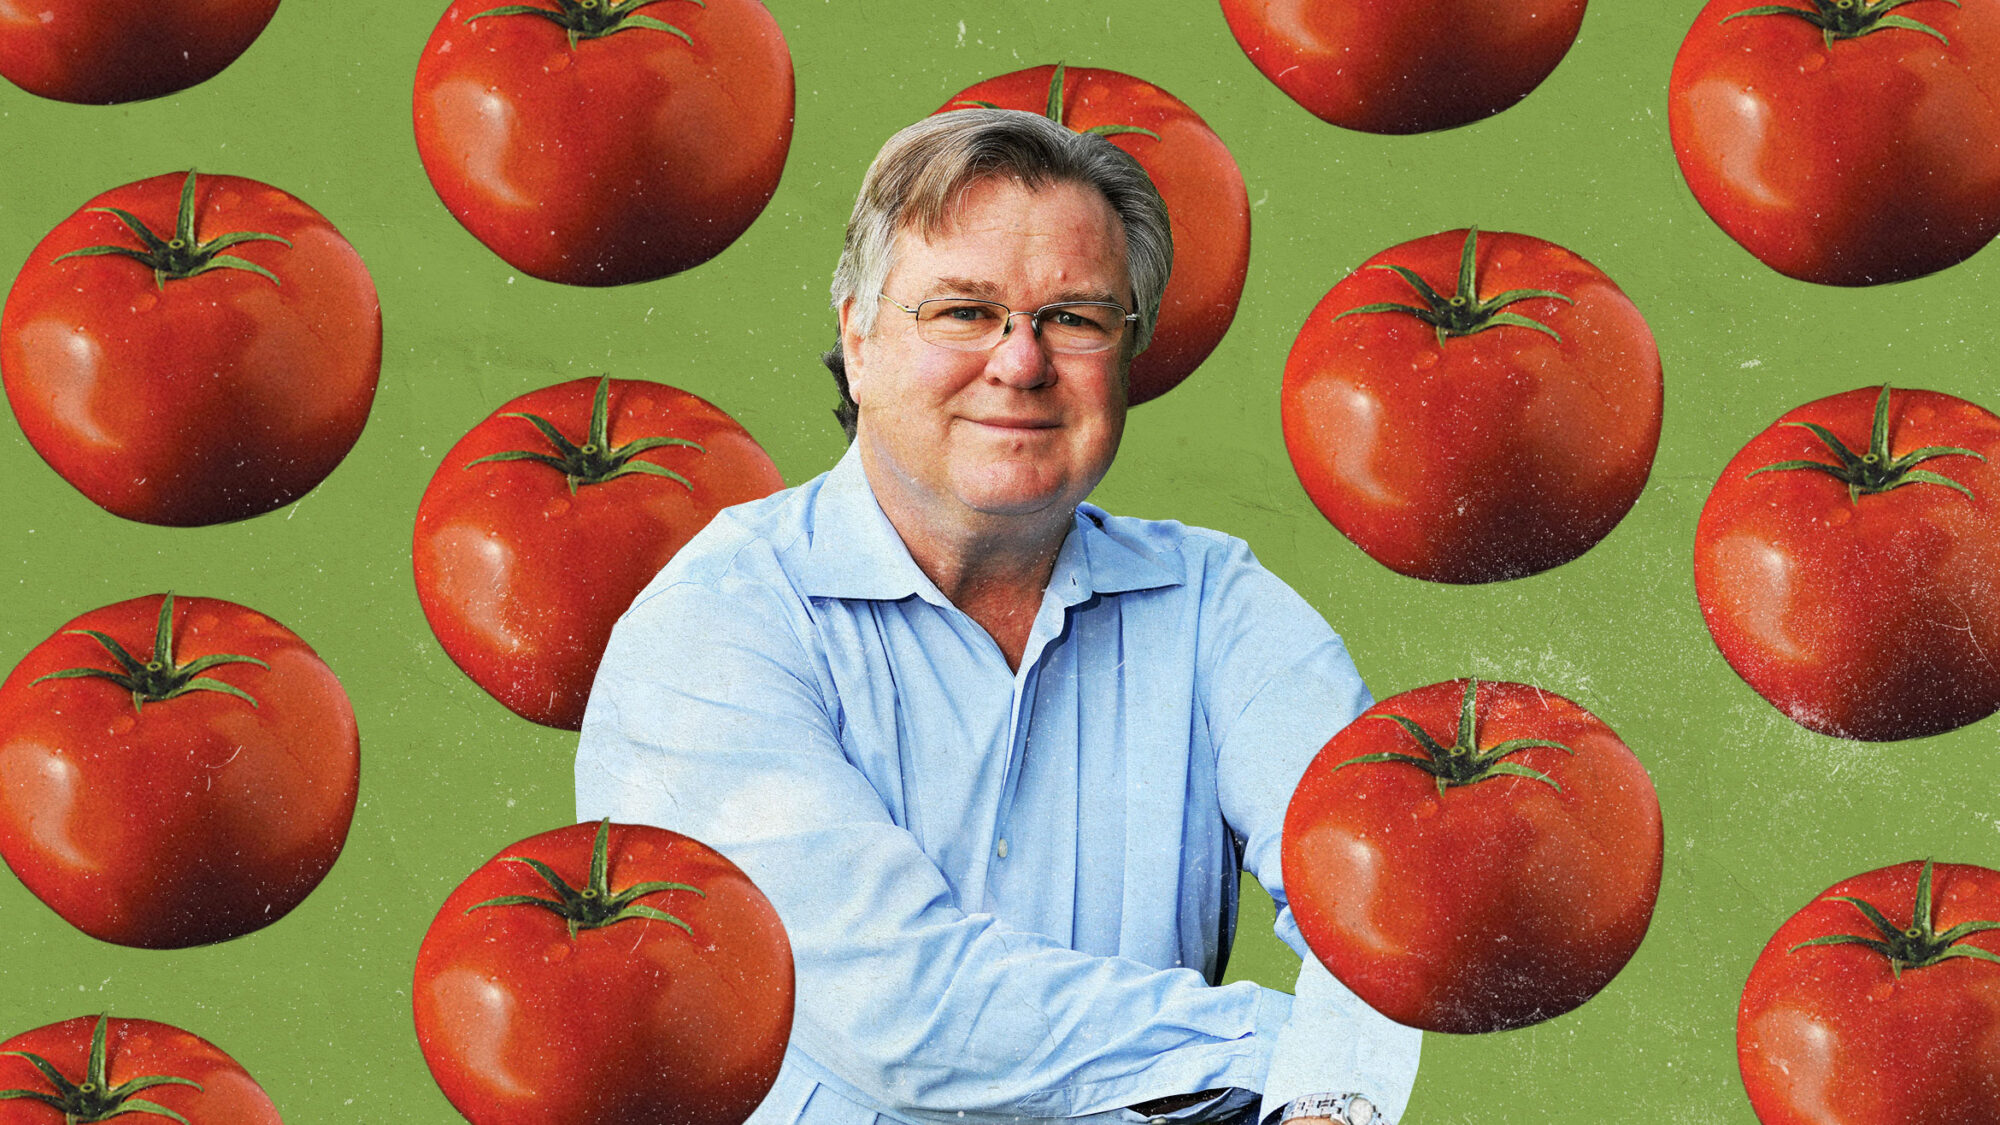 Article-Barry-Estabrook-Pig-Tales-Tomatoland